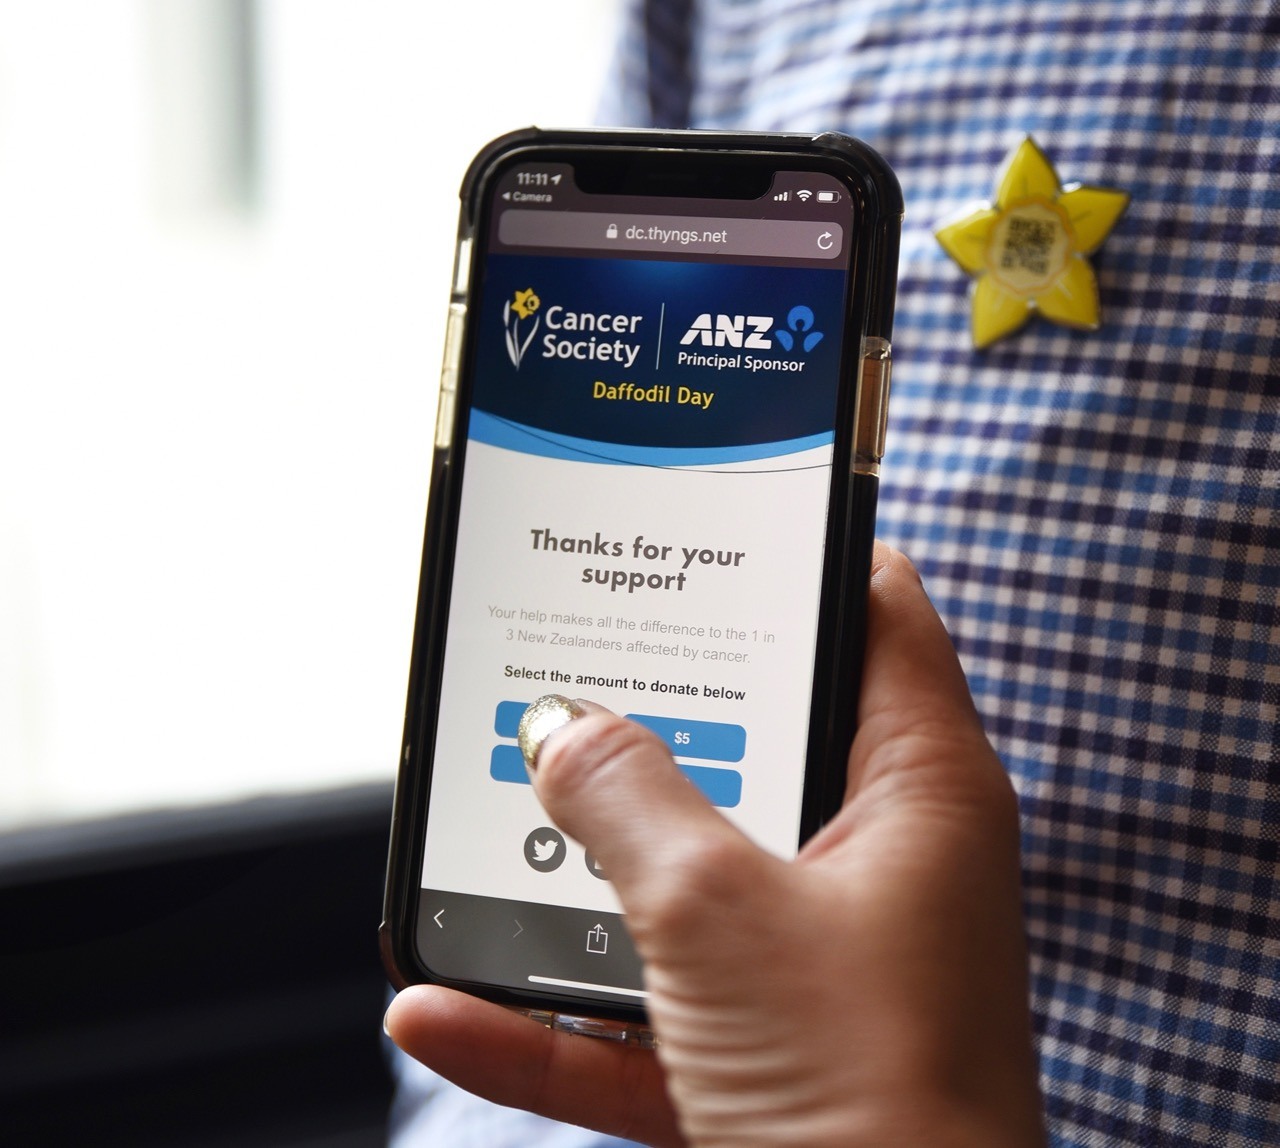 ANZ revolutionises donating for Cancer Society's Daffodil Day with new innovation via TBWANZ